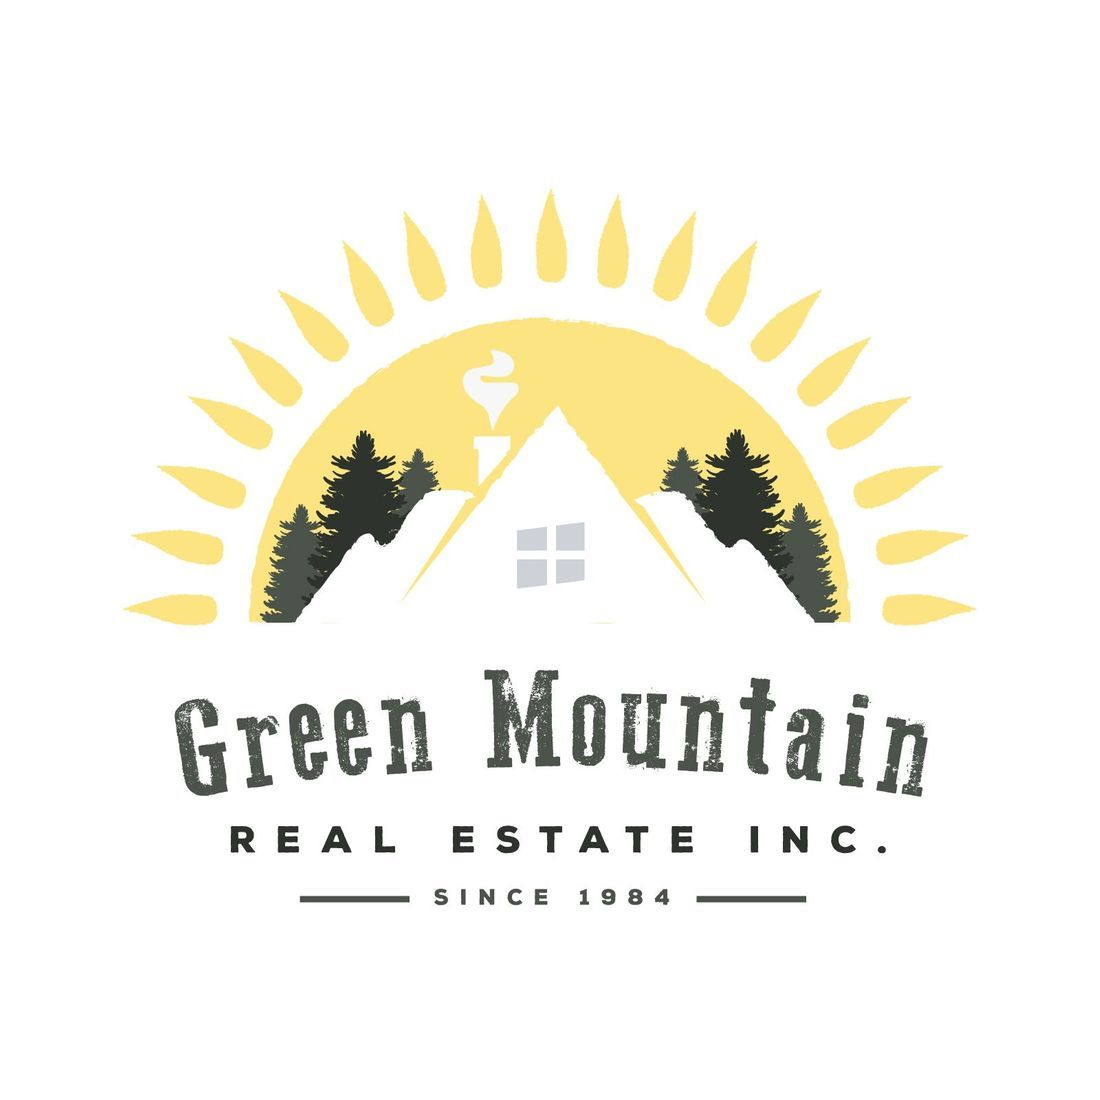 Green Mountain Real Estate Inc.